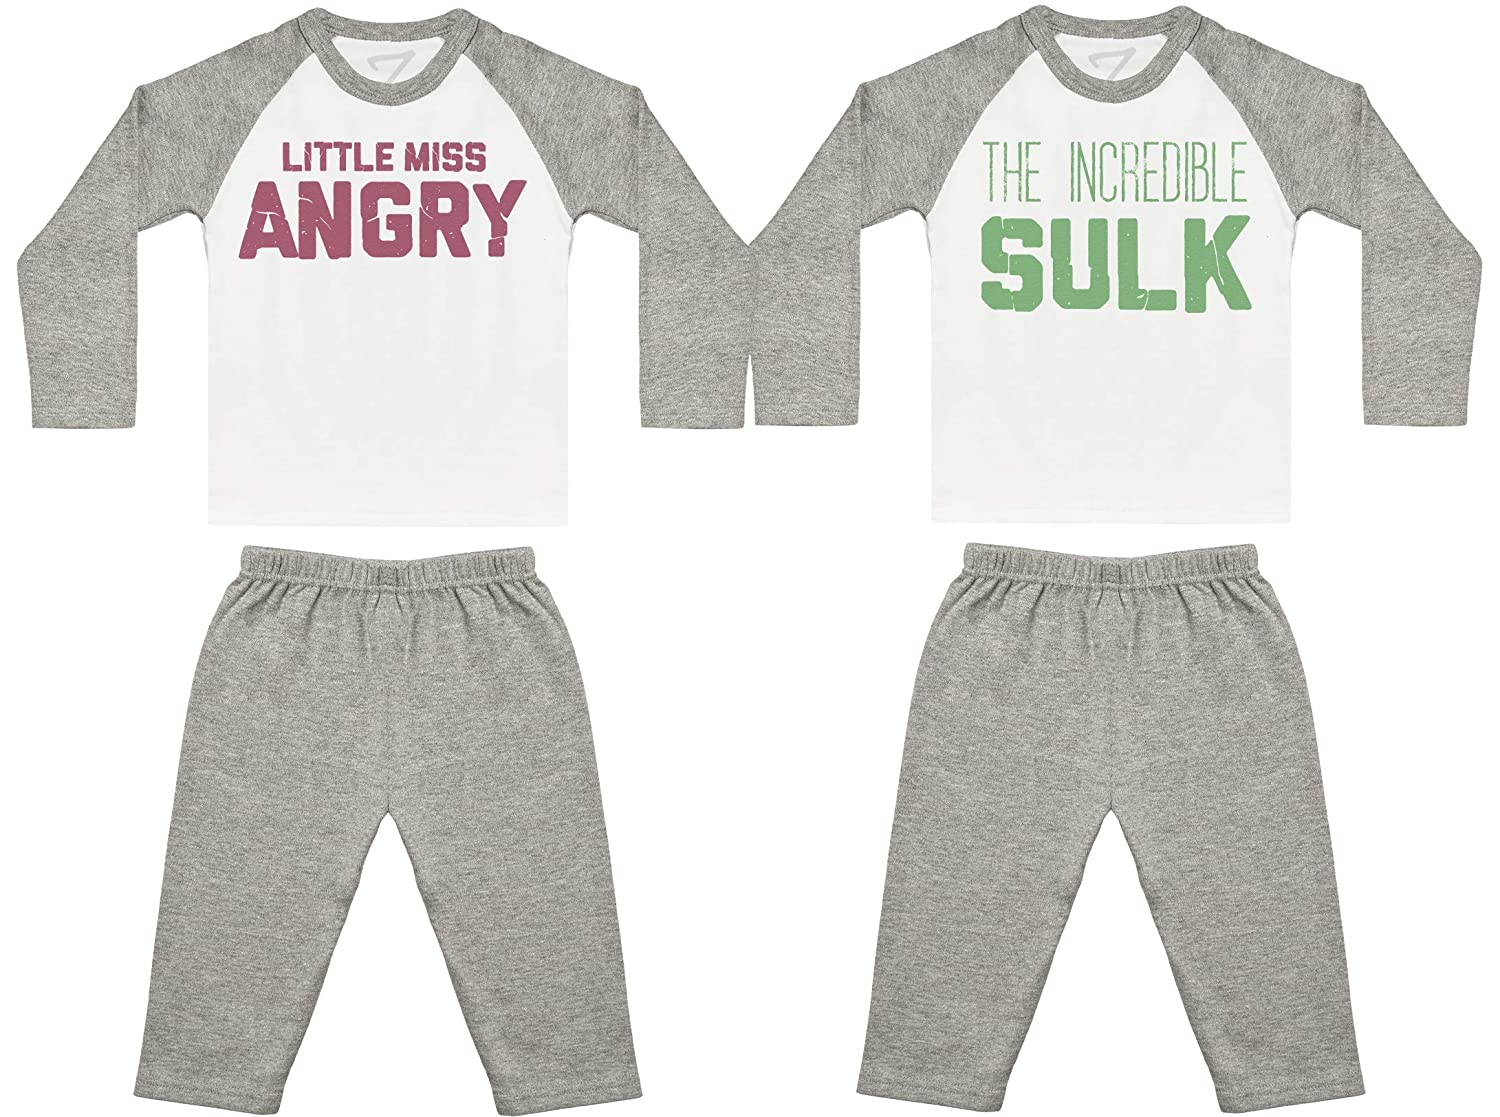 Baby Twins Nightwear Little Miss Angry The Incredible Sulk Baby Twin Pyjamas Baby Twins Gift